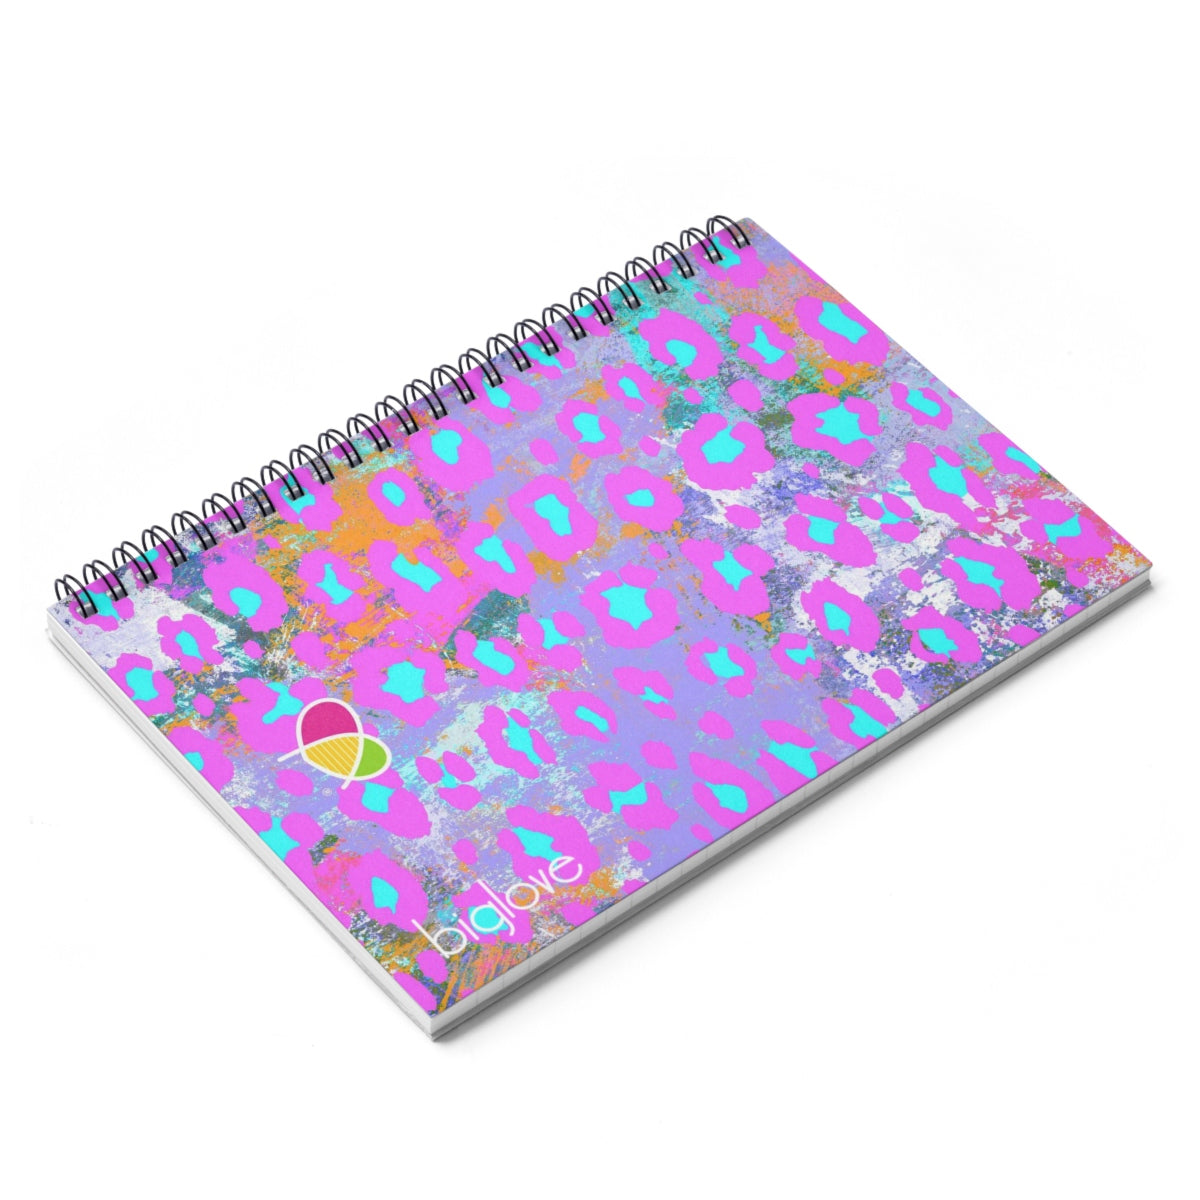 Spiral Notebook - Ruled Line - Biglove